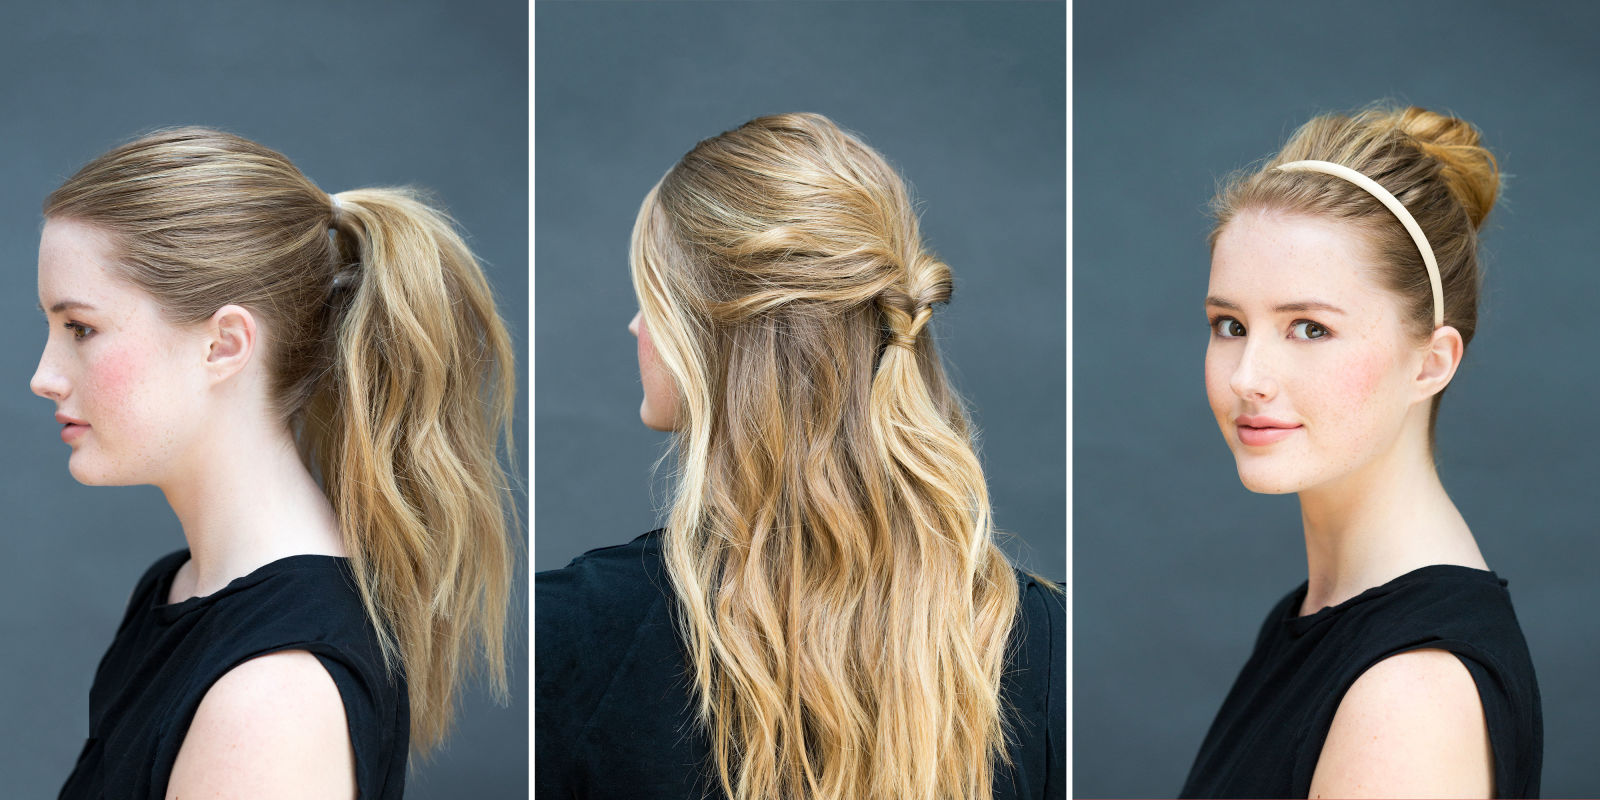 Superb 10 Easy Hairstyles You Can Do In 10 Seconds Diy Hairstyles Short Hairstyles Gunalazisus